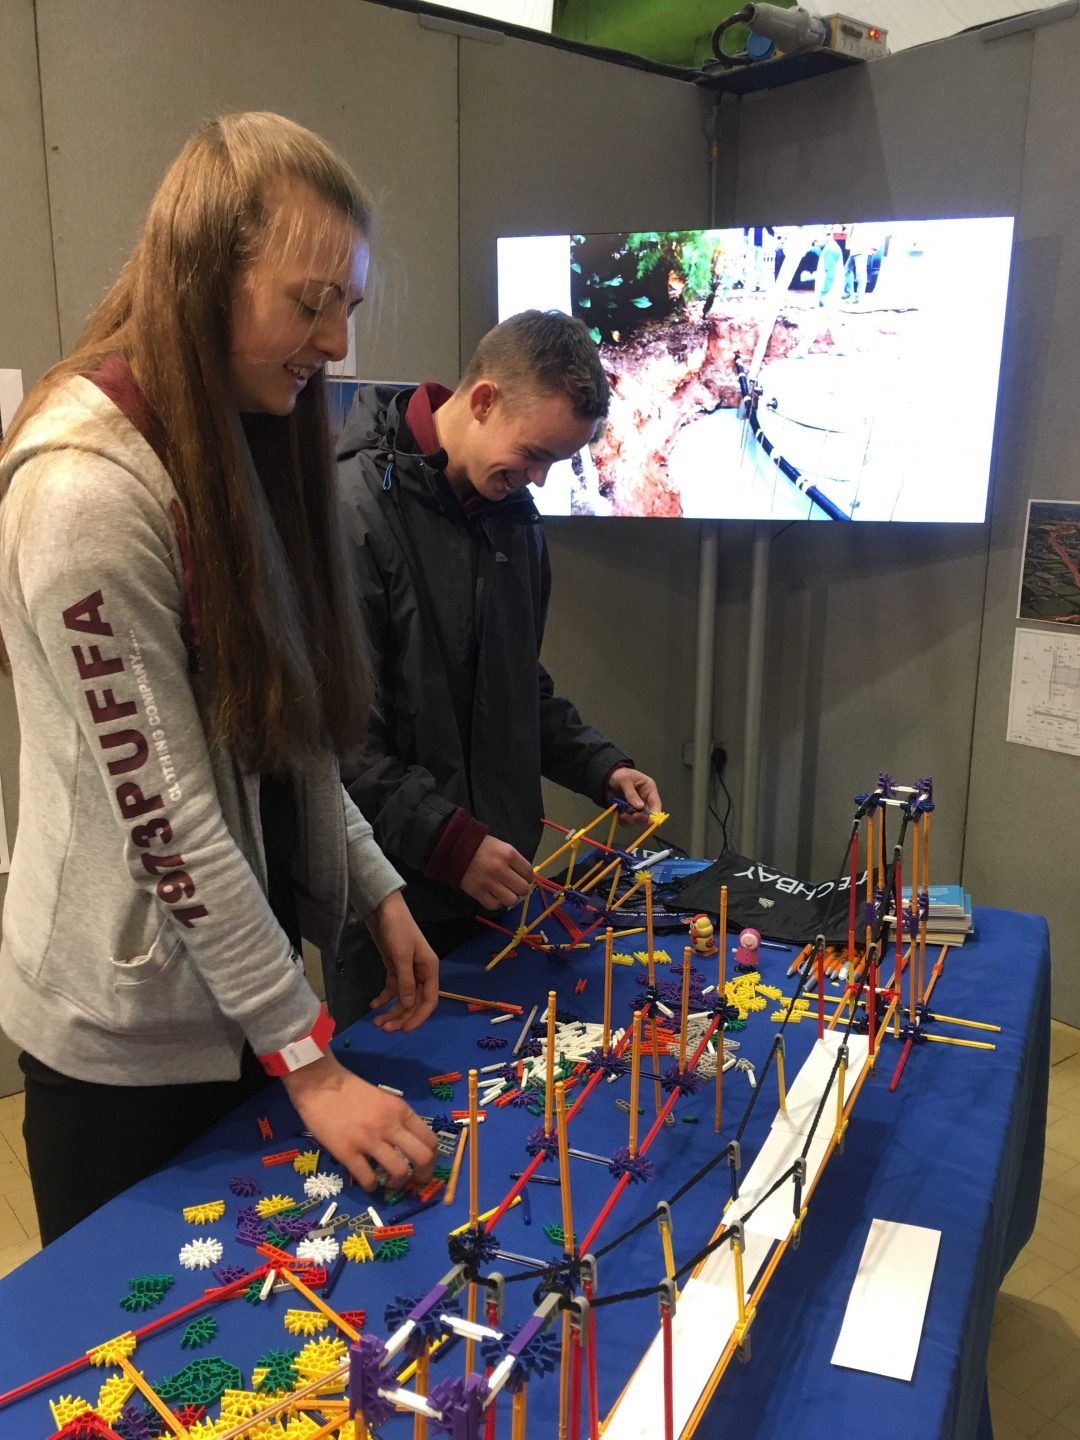 Sophie Hoare and Lorcan Frewin try their hand at bridge engineering